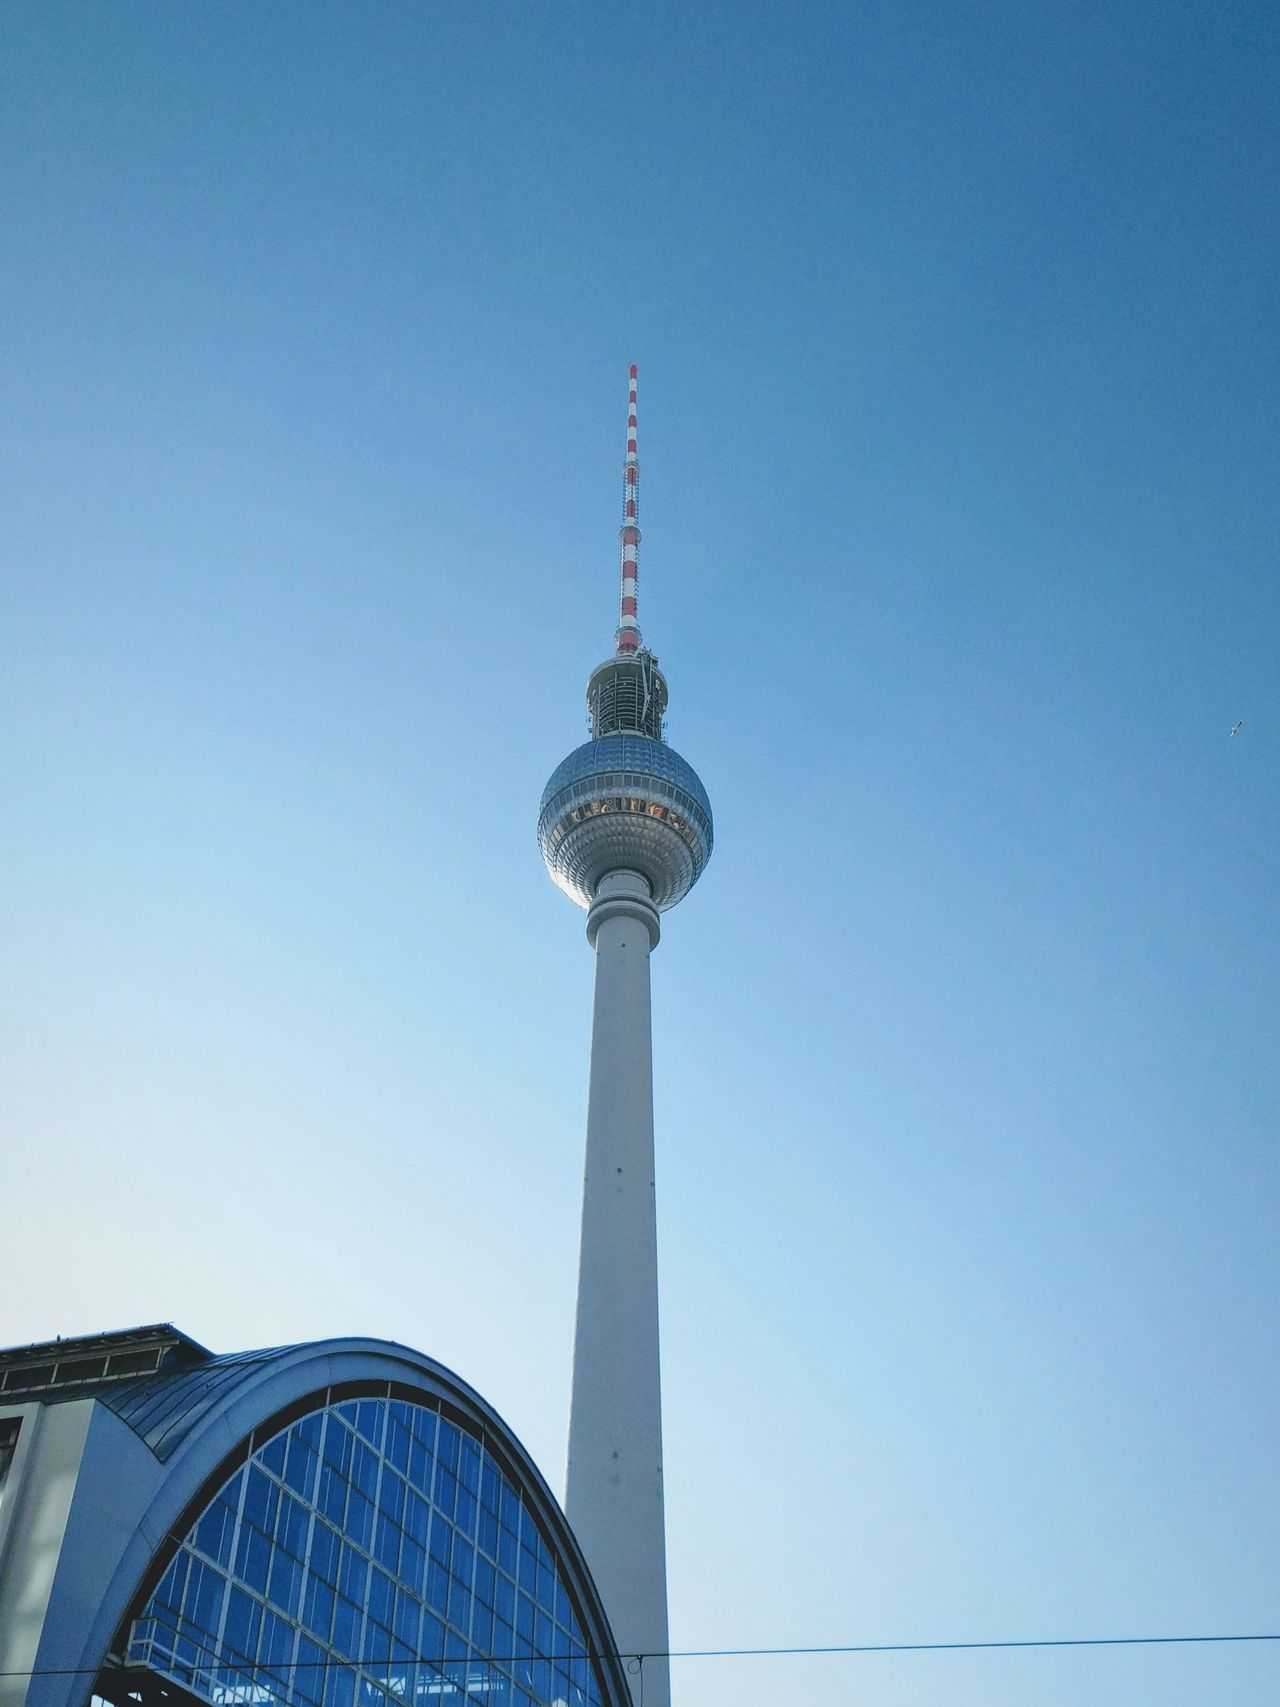 Blue City Communication Tower Travel Travel Destinations Arts Culture And Entertainment Architecture Clear Sky Cityscape Business Finance And Industry No People Outdoors Day Urban Skyline Skyscraper Sky Architecture Alexanderplatz Fernsehturm Fernsehturm / Tv Tower Berliner Ansichten Berlin Commuting Commute